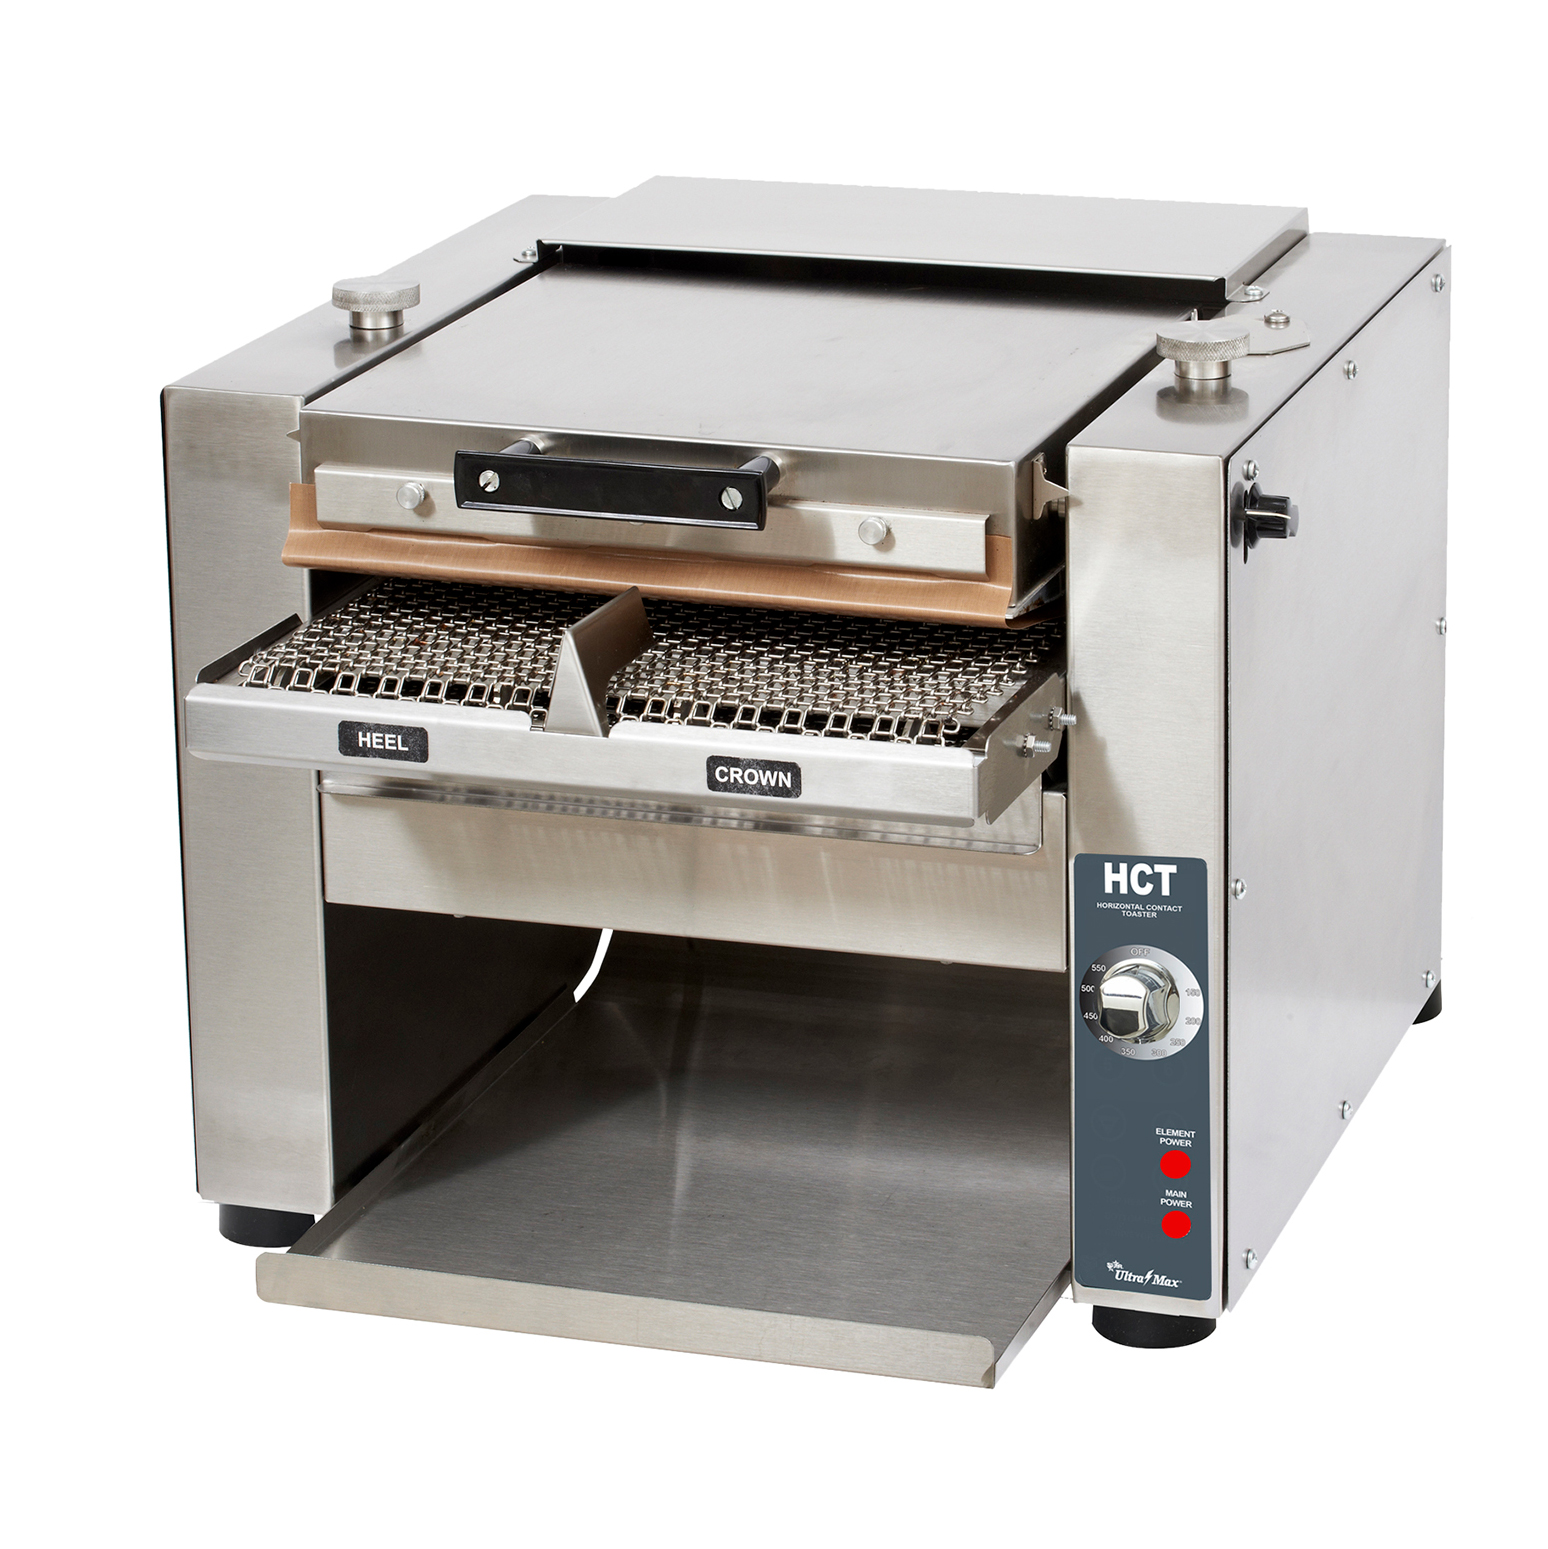 Star HCT13M toaster, contact grill, conveyor type